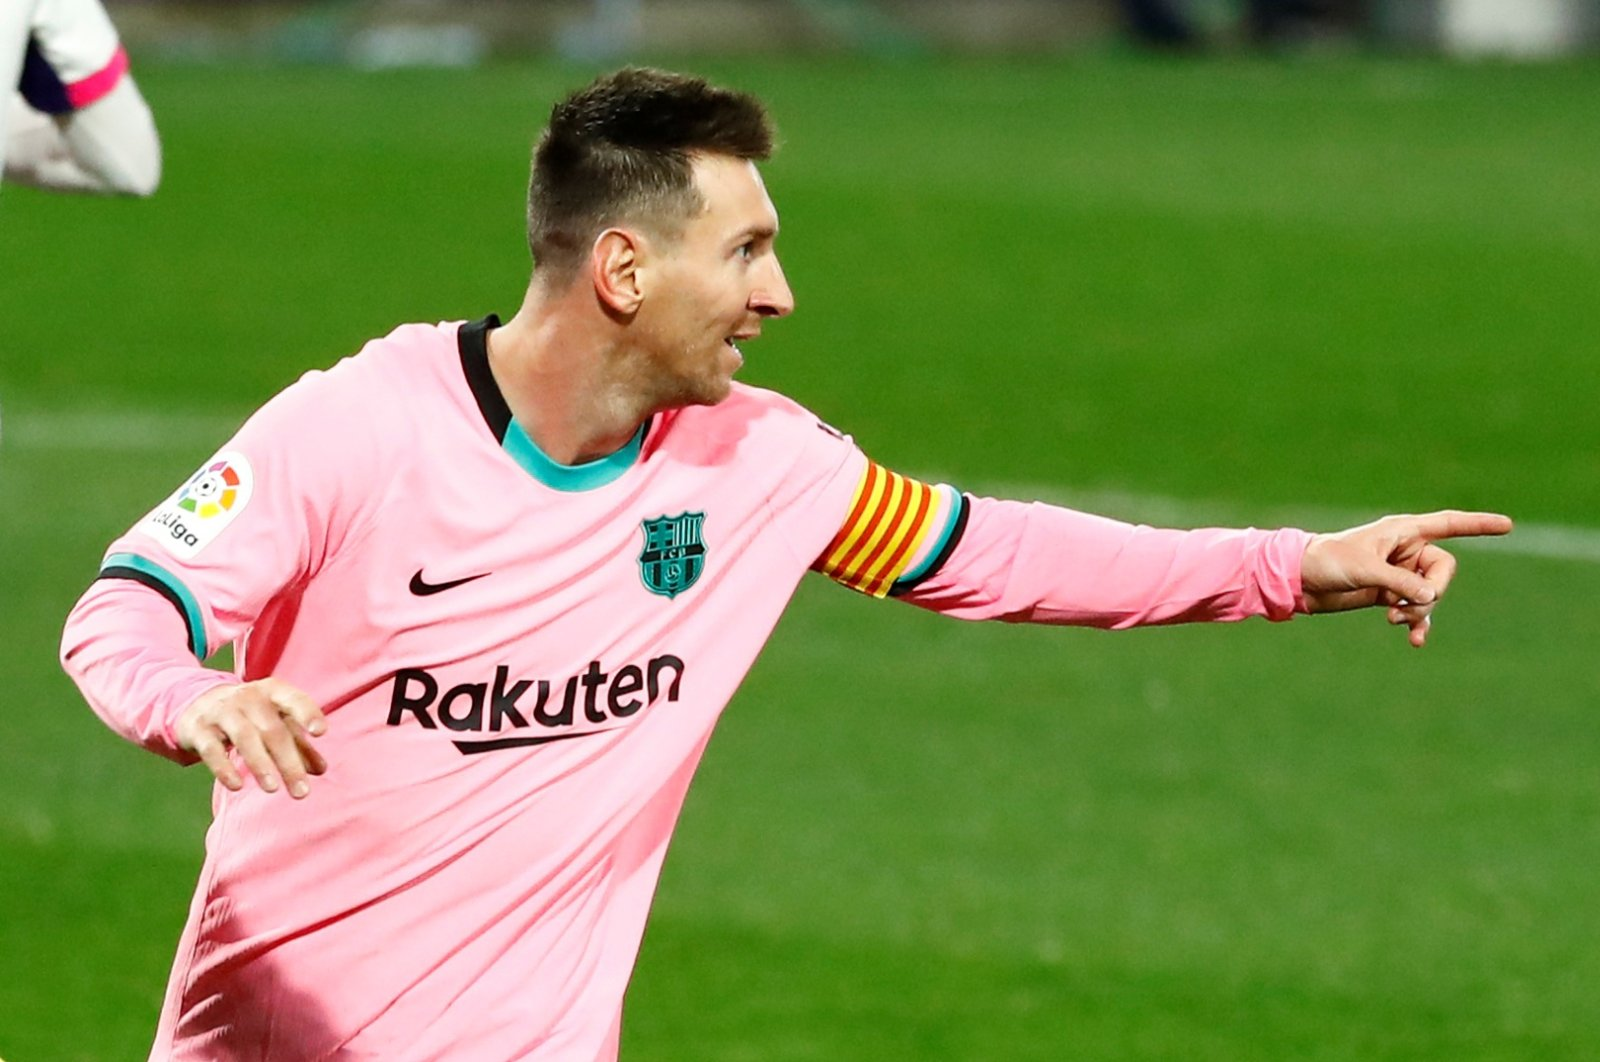 Barcelona's Lionel Messi celebrates scoring their third goal against Real Valladolid, in Valladolid, Spain, Dec. 22, 2020. (REUTERS PHOTO)